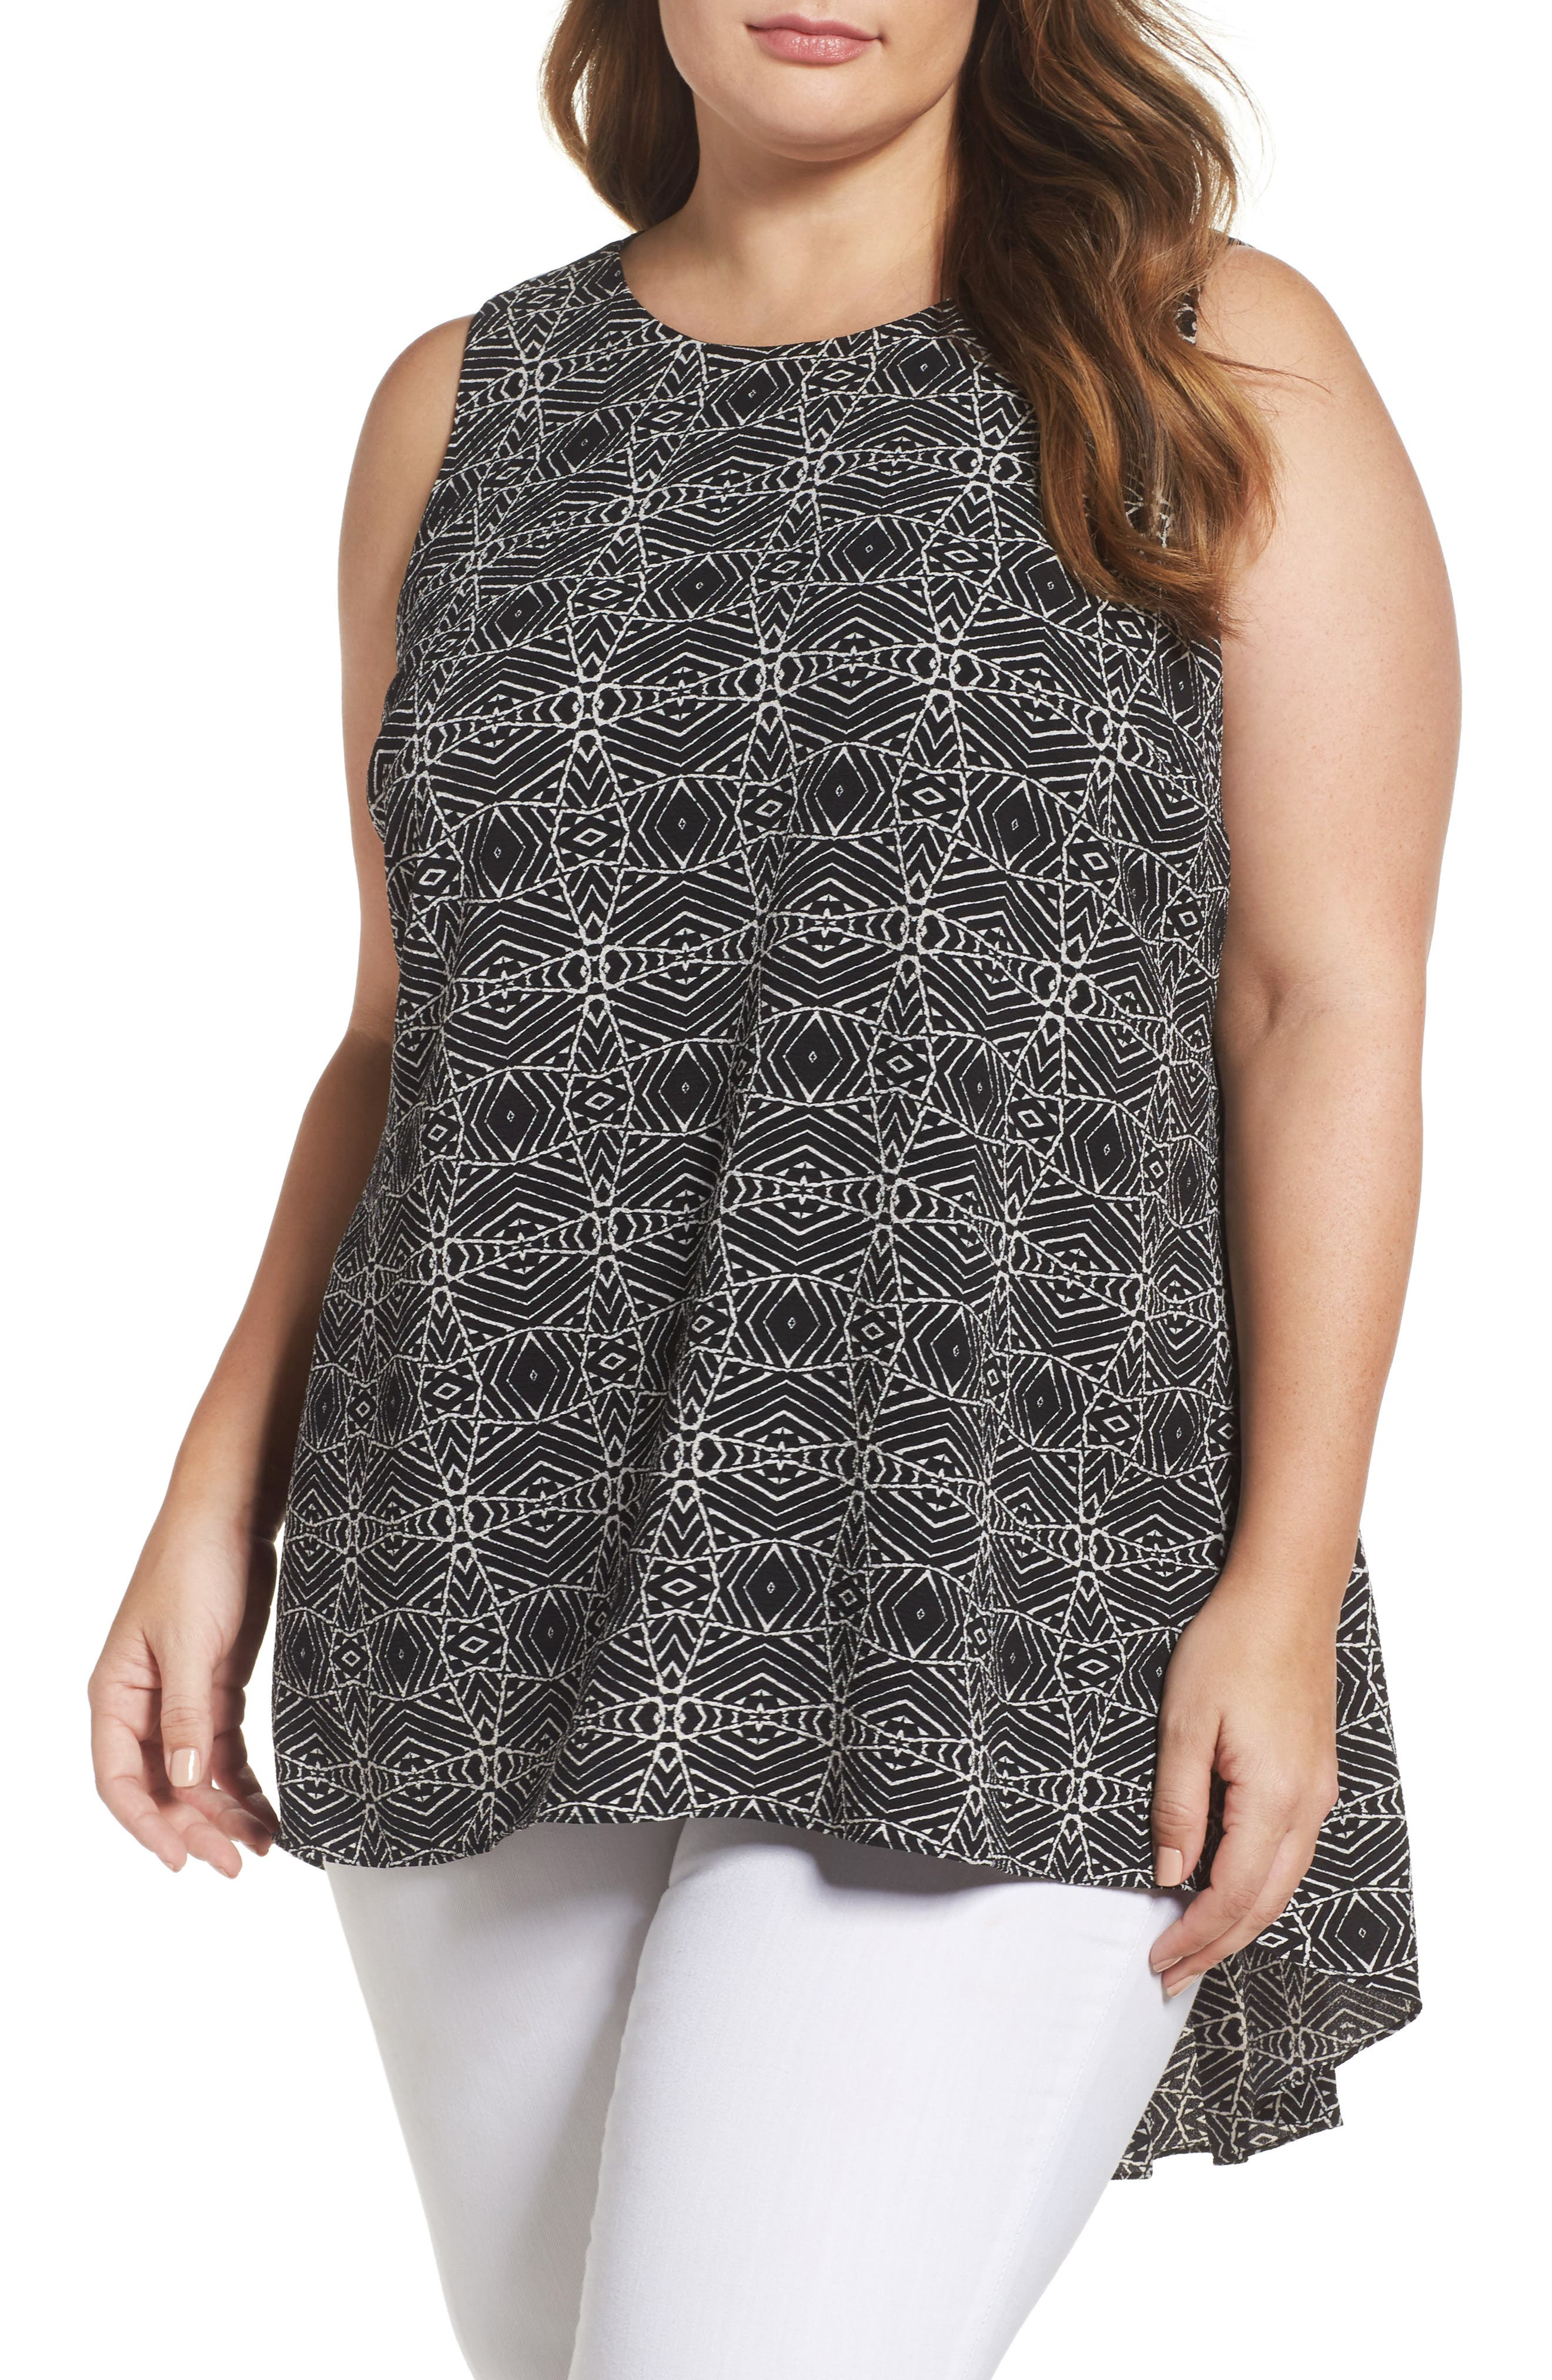 Alternate Image 1 Selected - Vince Camuto Yoruba Graphic High/Low Top (Plus Size)